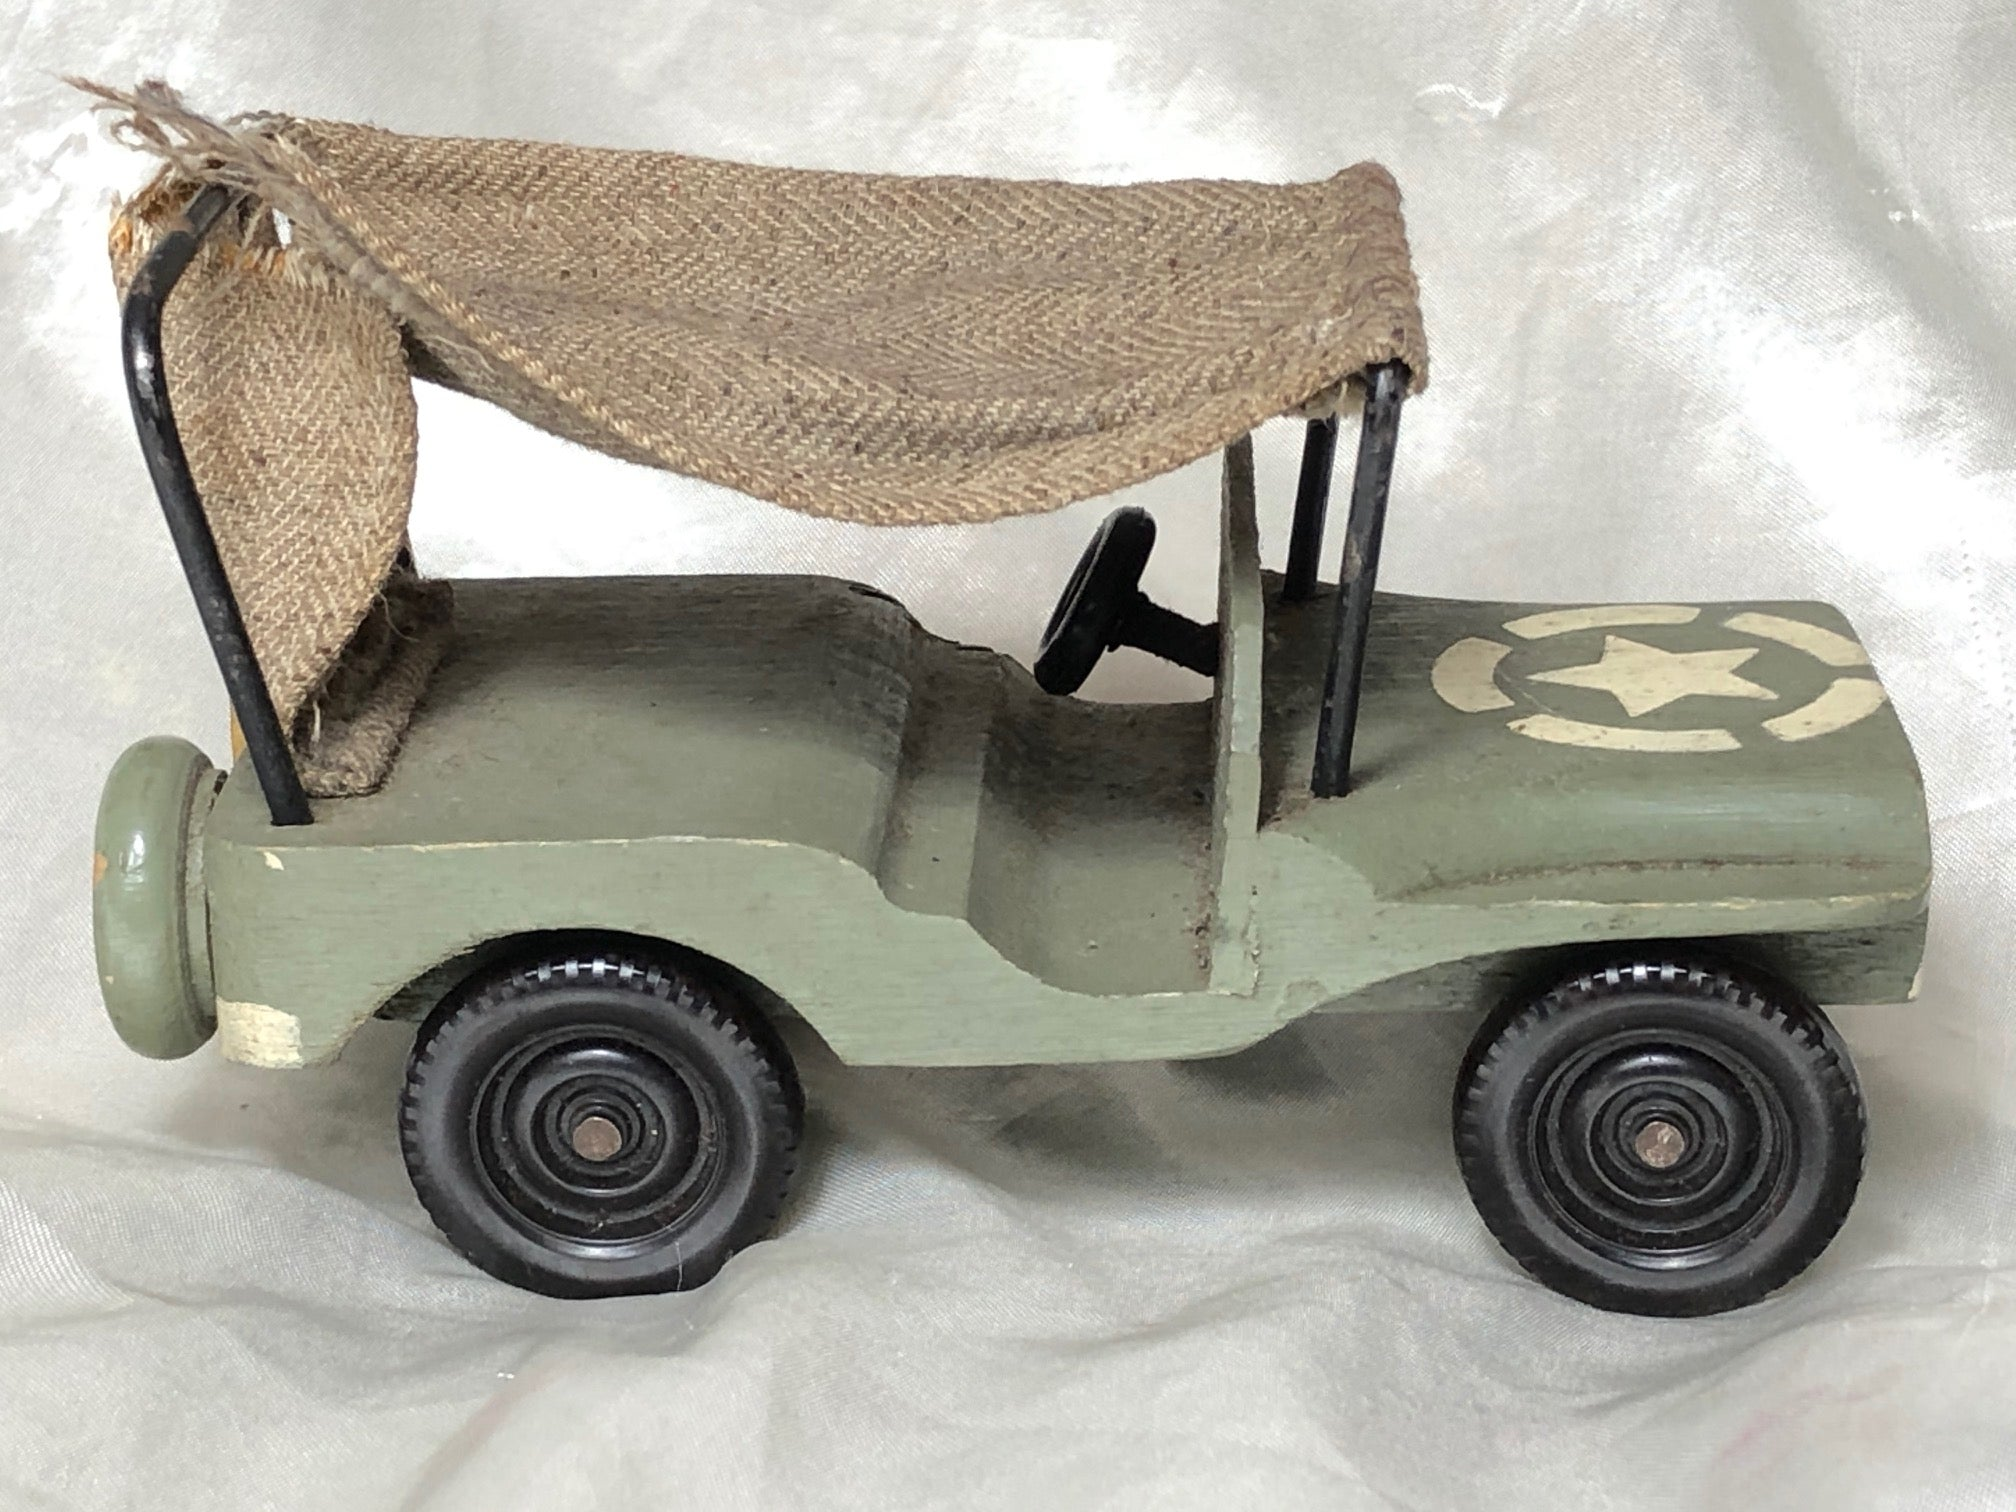 1 Small Vintage Handmade US Army WW2 Carved Wooden Toy Model Willys MB Jeep